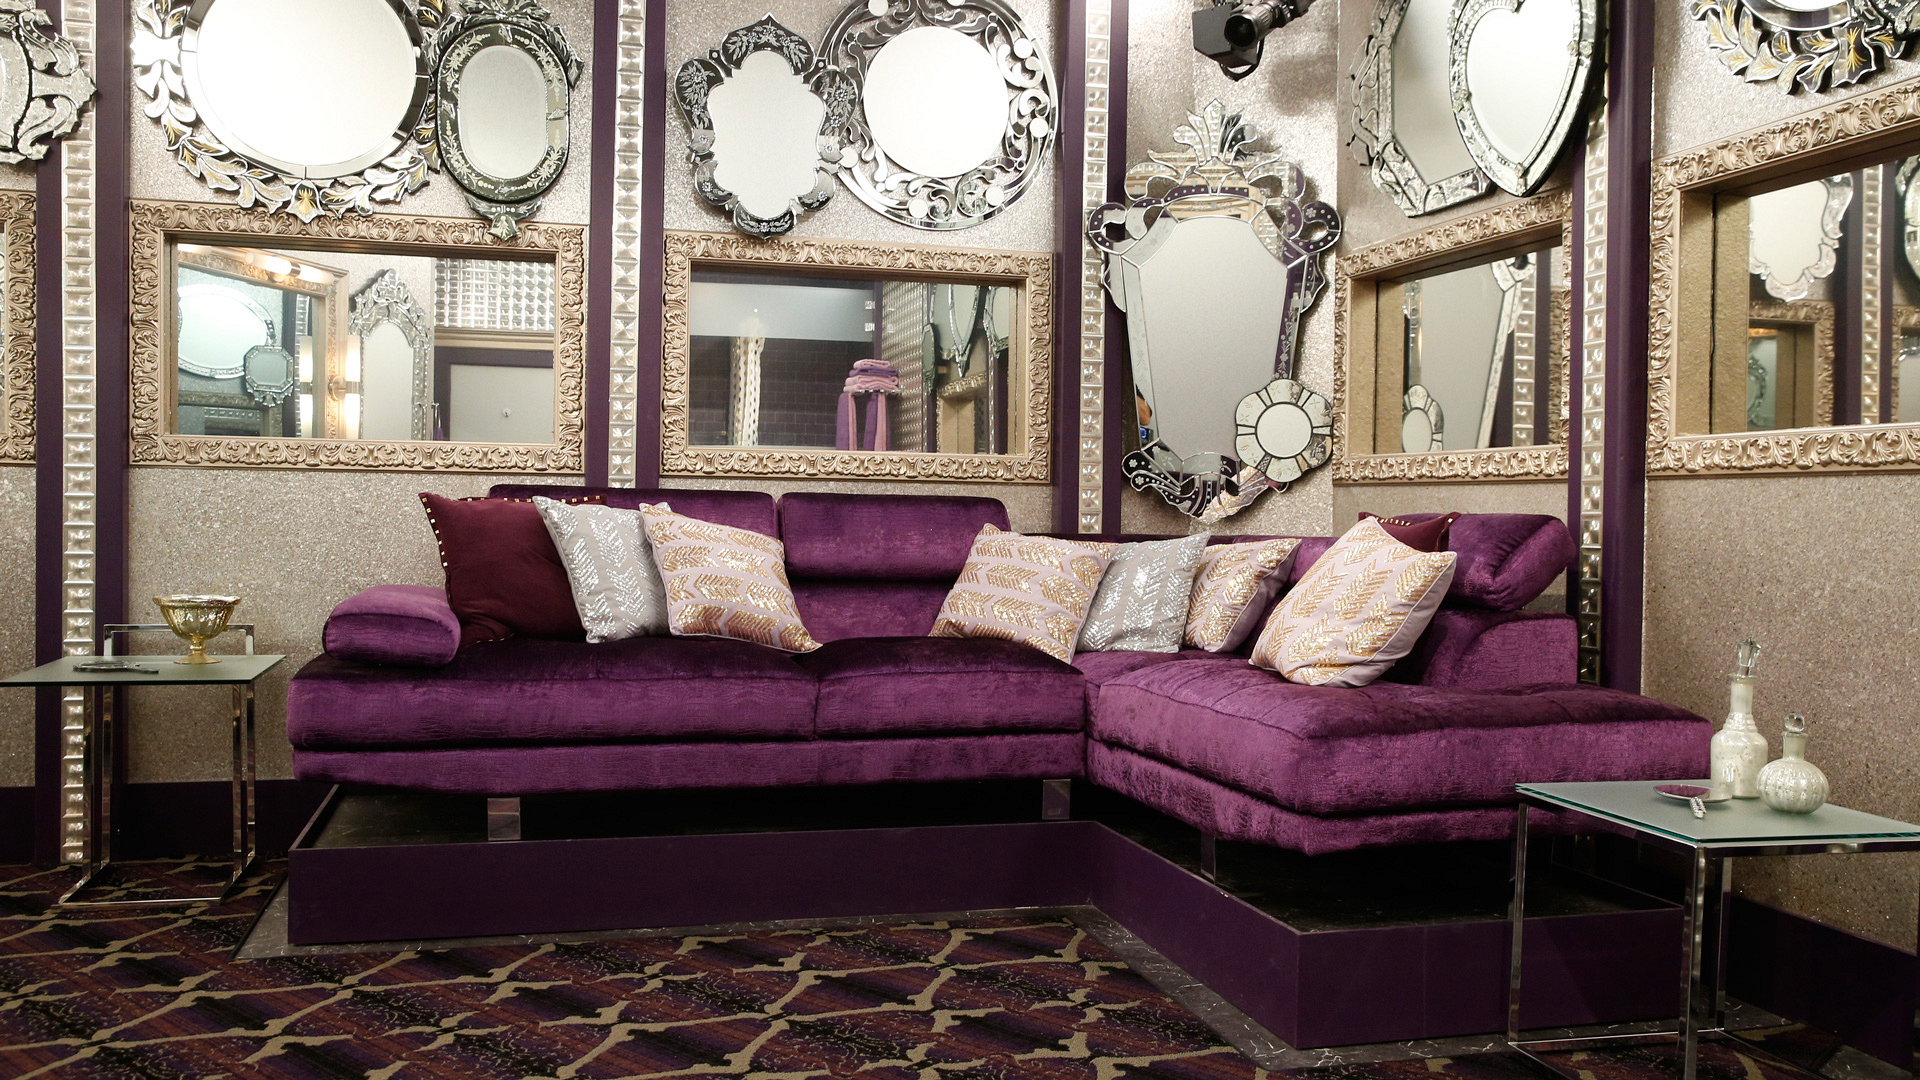 Shades of purple and silver give this room a most sophisticated touch.